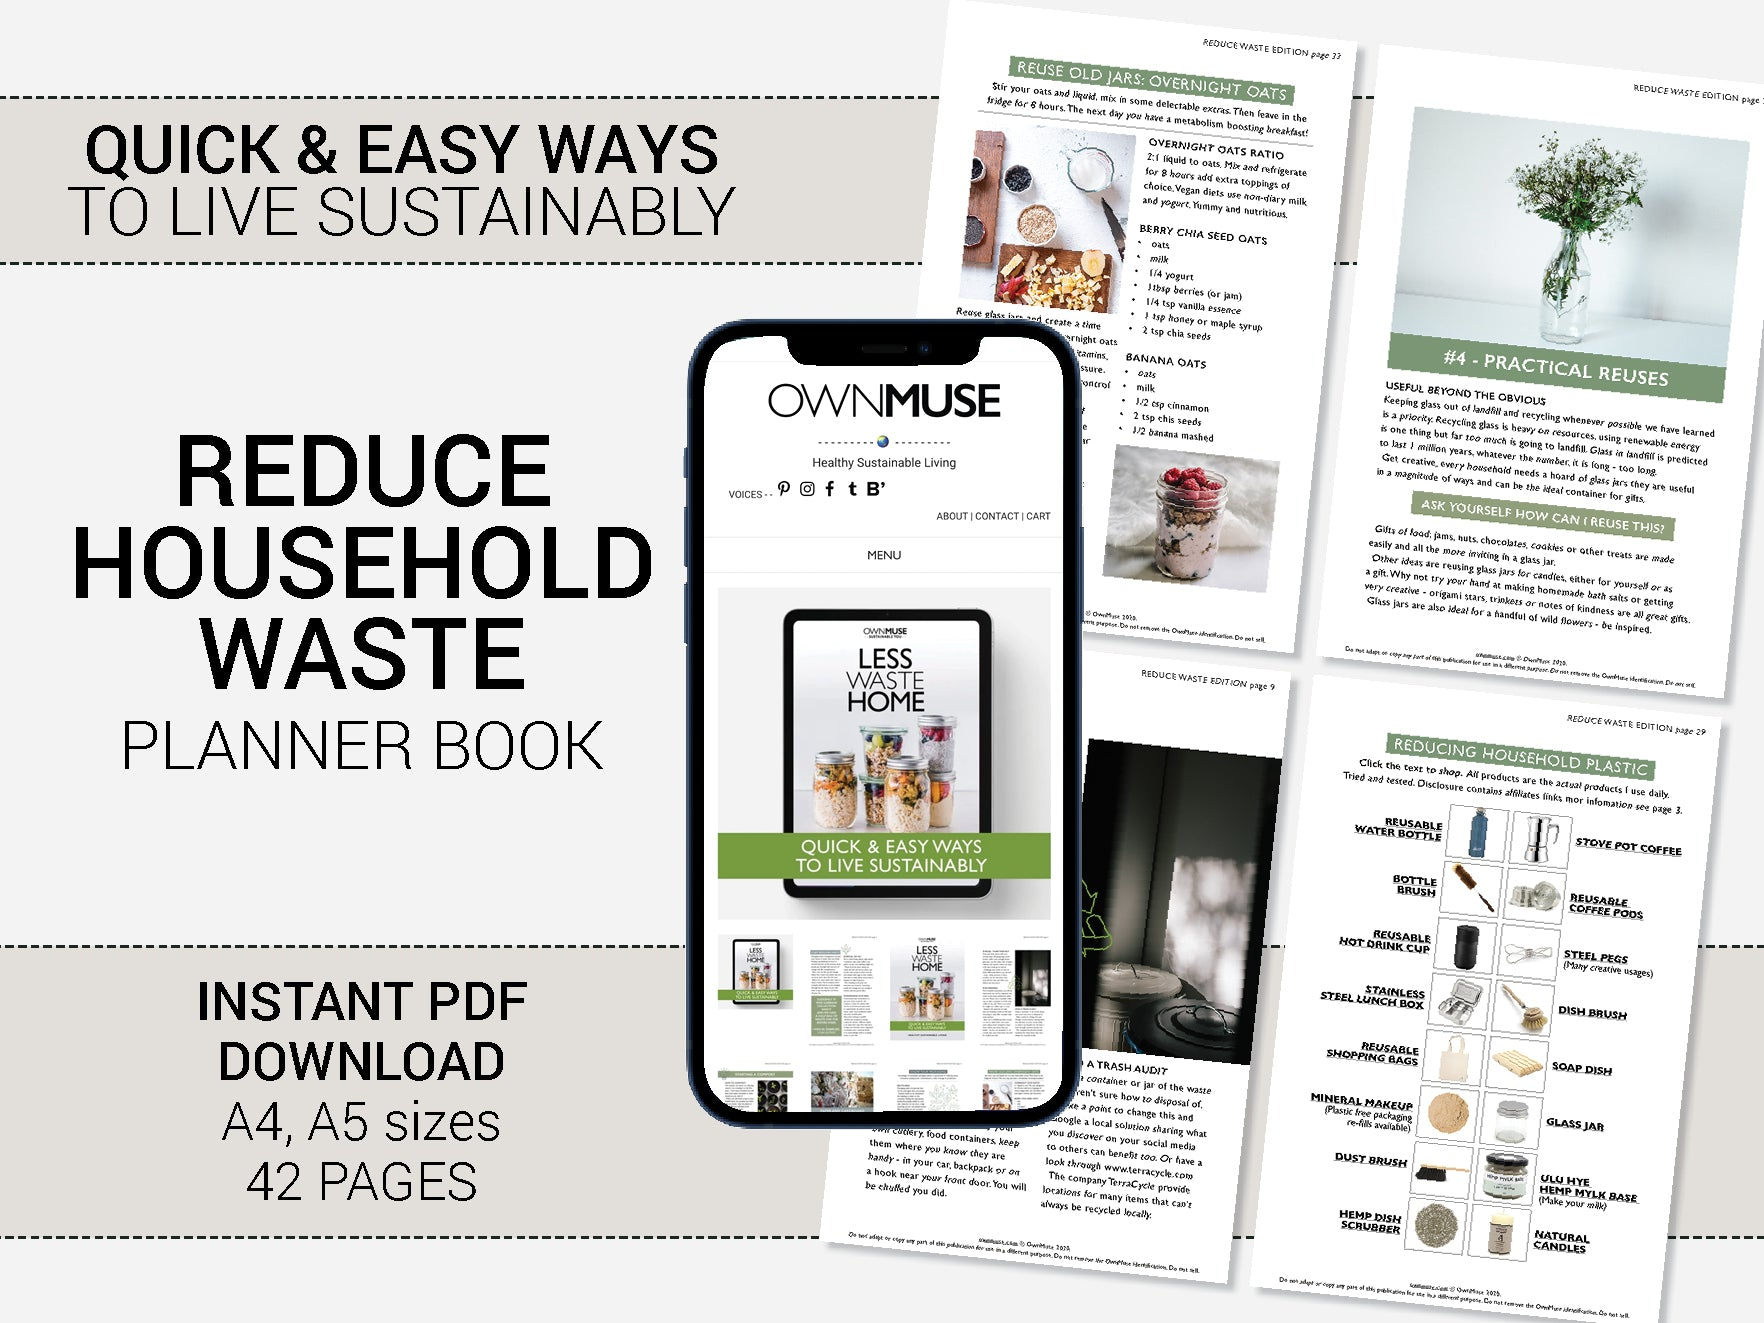 Step-by-step Sustainable Living Guide: Less Waste Home